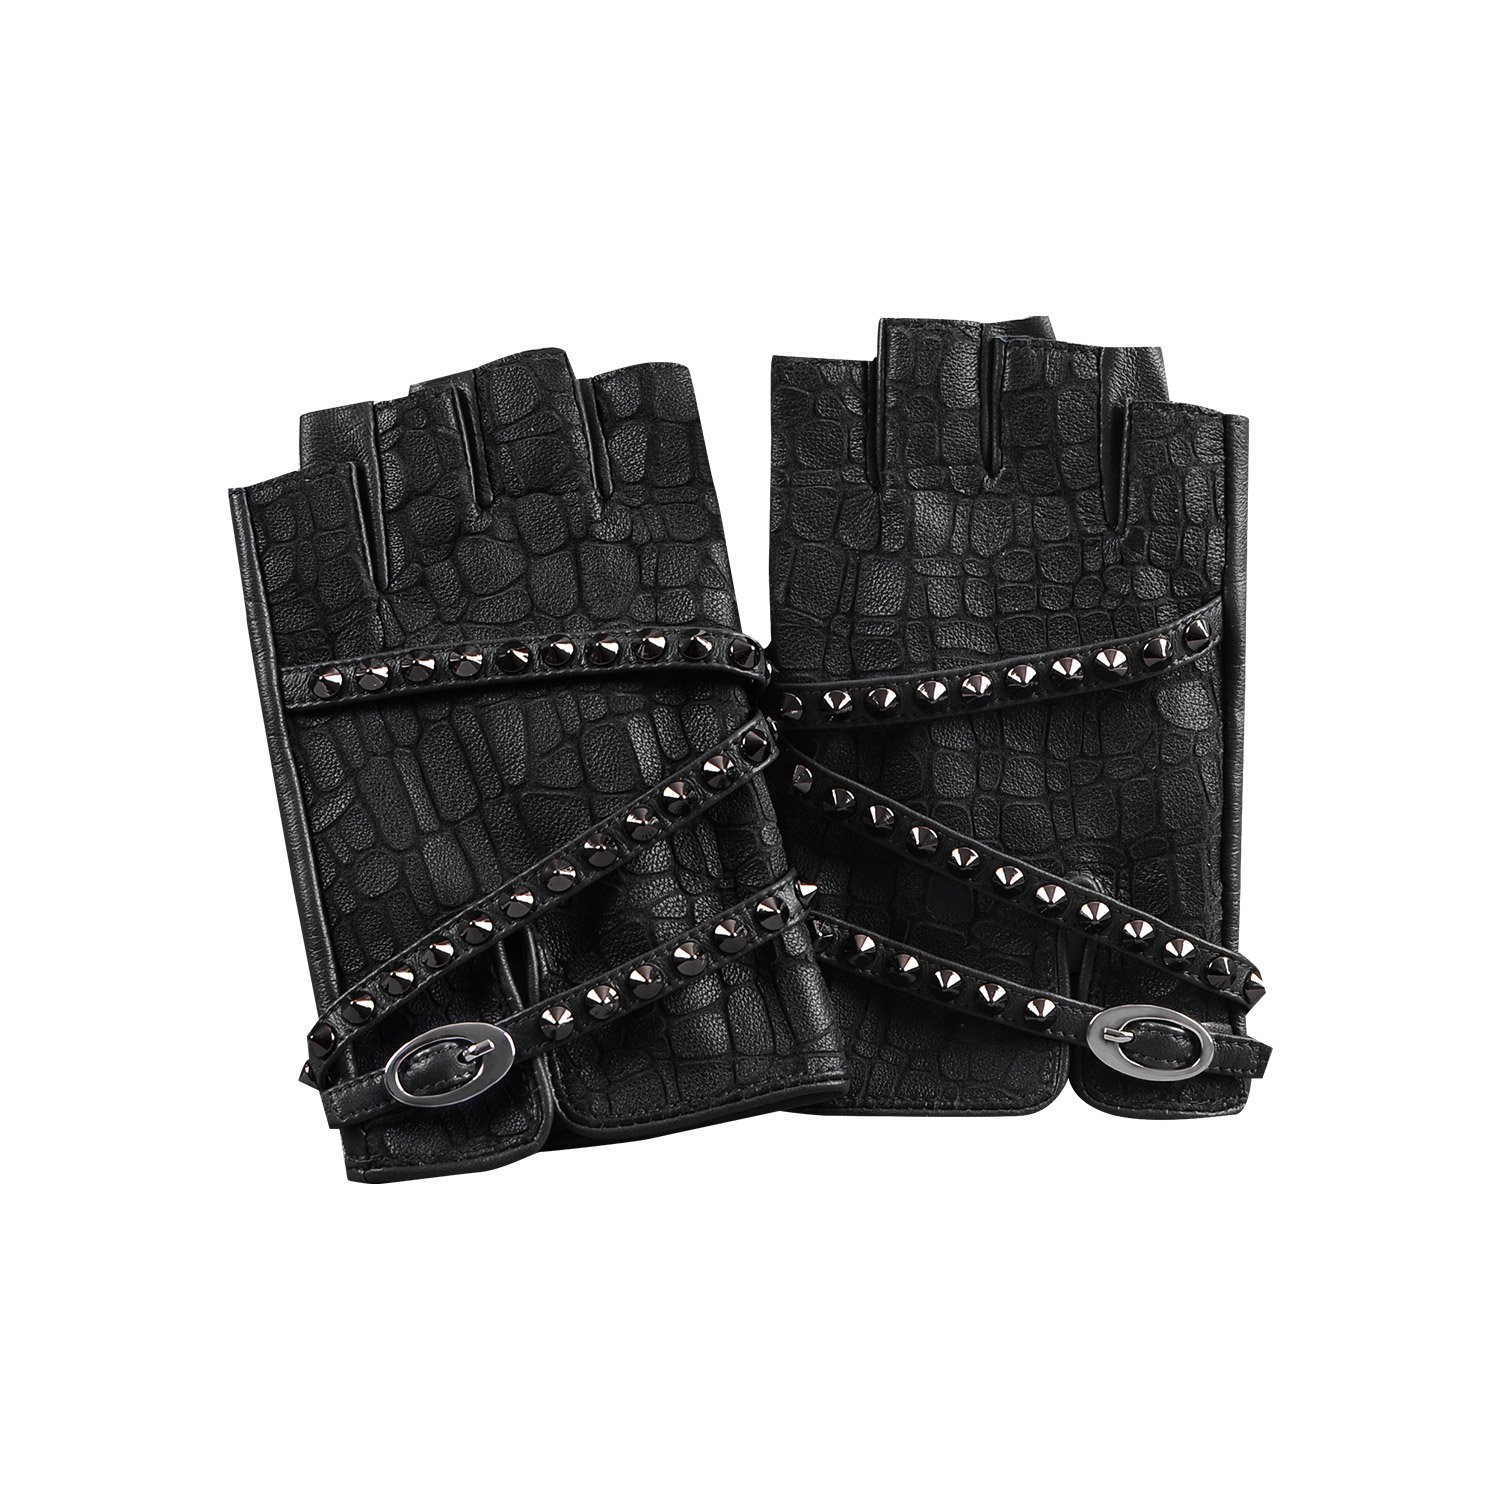 Fioretto Womens Driving Leather Gloves Harley Fingerless Gloves Outdoor Italian Genuine Goatskin Leather Half Finger Gloves Punk Rock Rivets Unlined Black 7